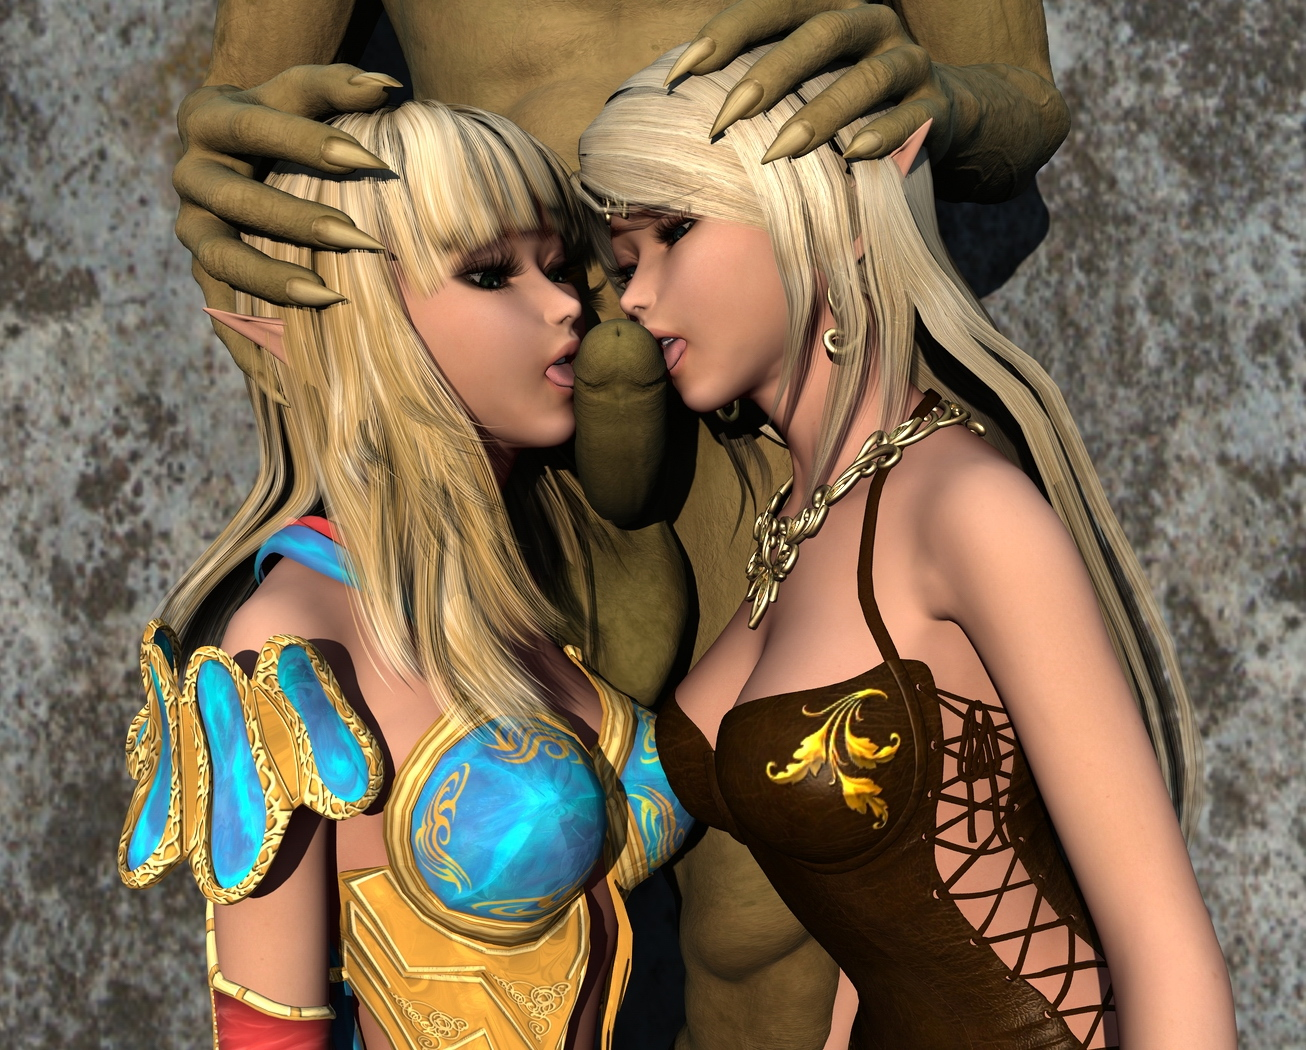 Yuna Warcraft 3d porn anime pictures